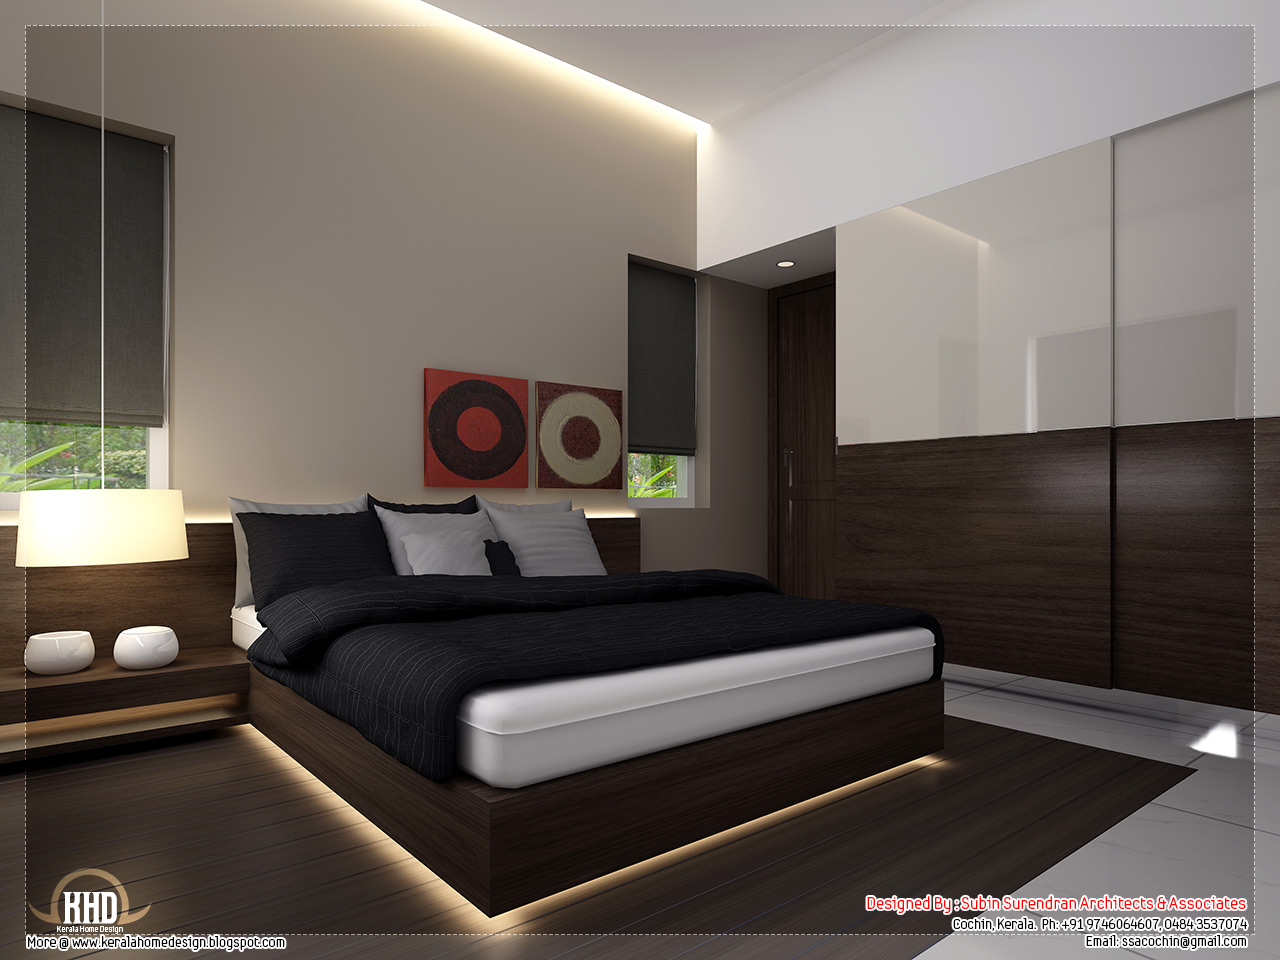 Beautiful home interior designs - Kerala home design and floor plans